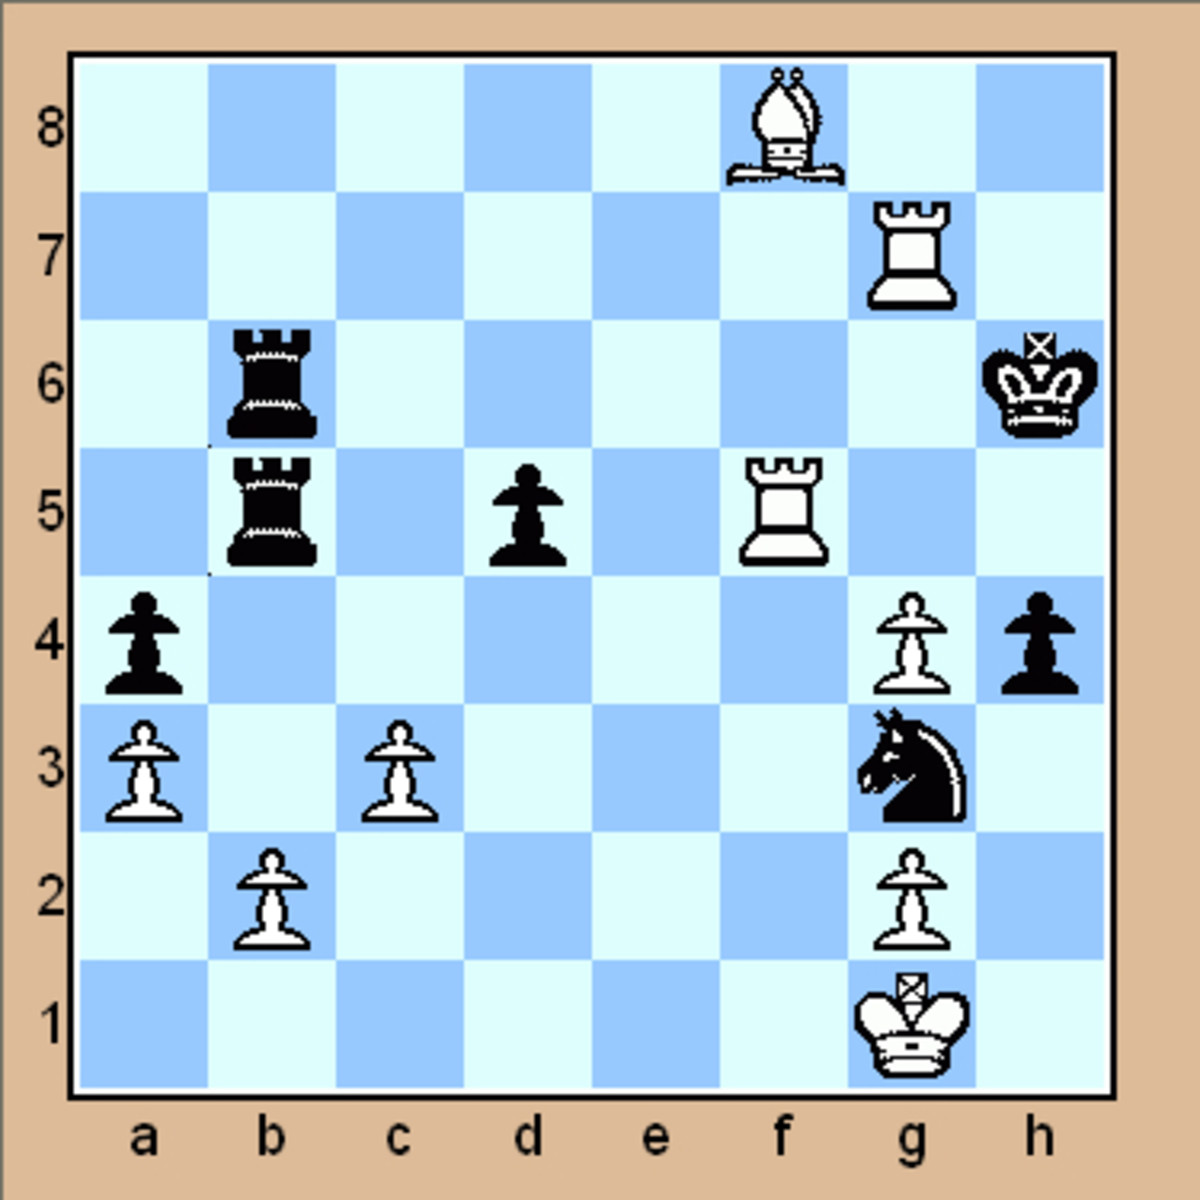 Please scroll down to check out the intermediate chess puzzles.